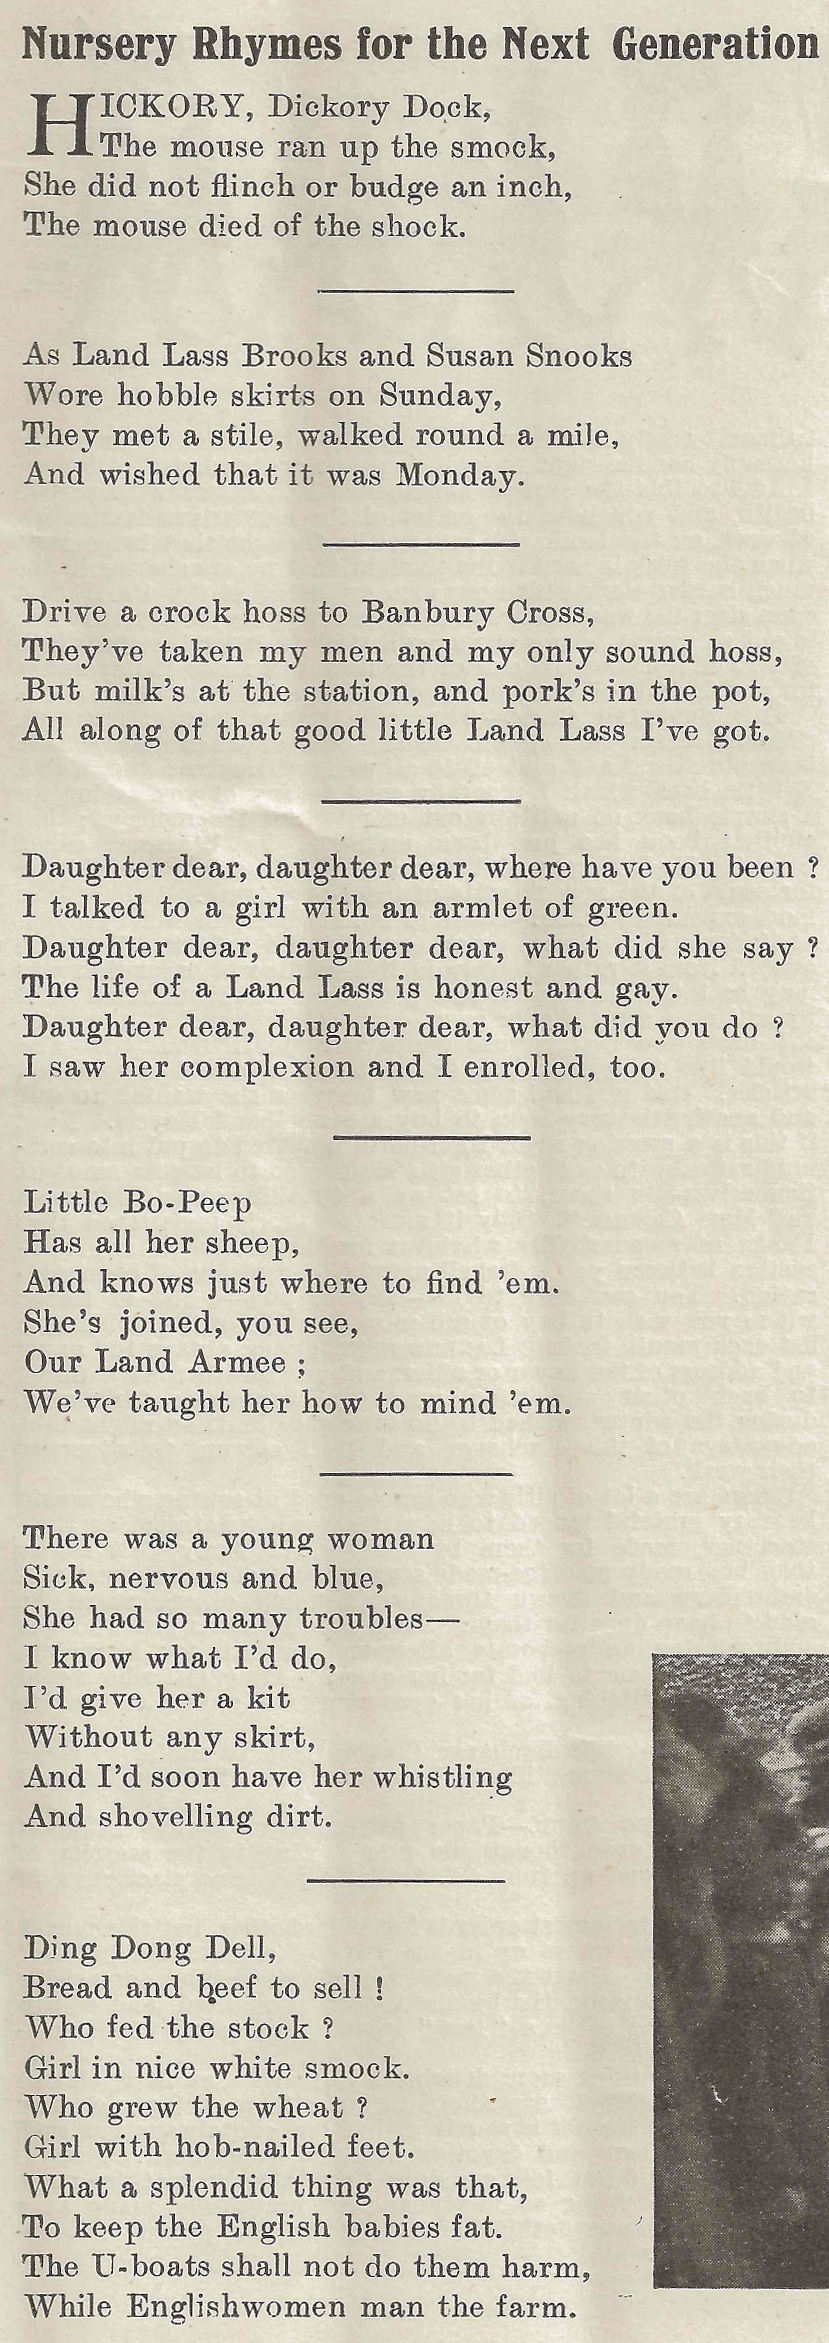 Nursery rhymes for the next generation.... Source: The Landswoman, August 1918, page 171.